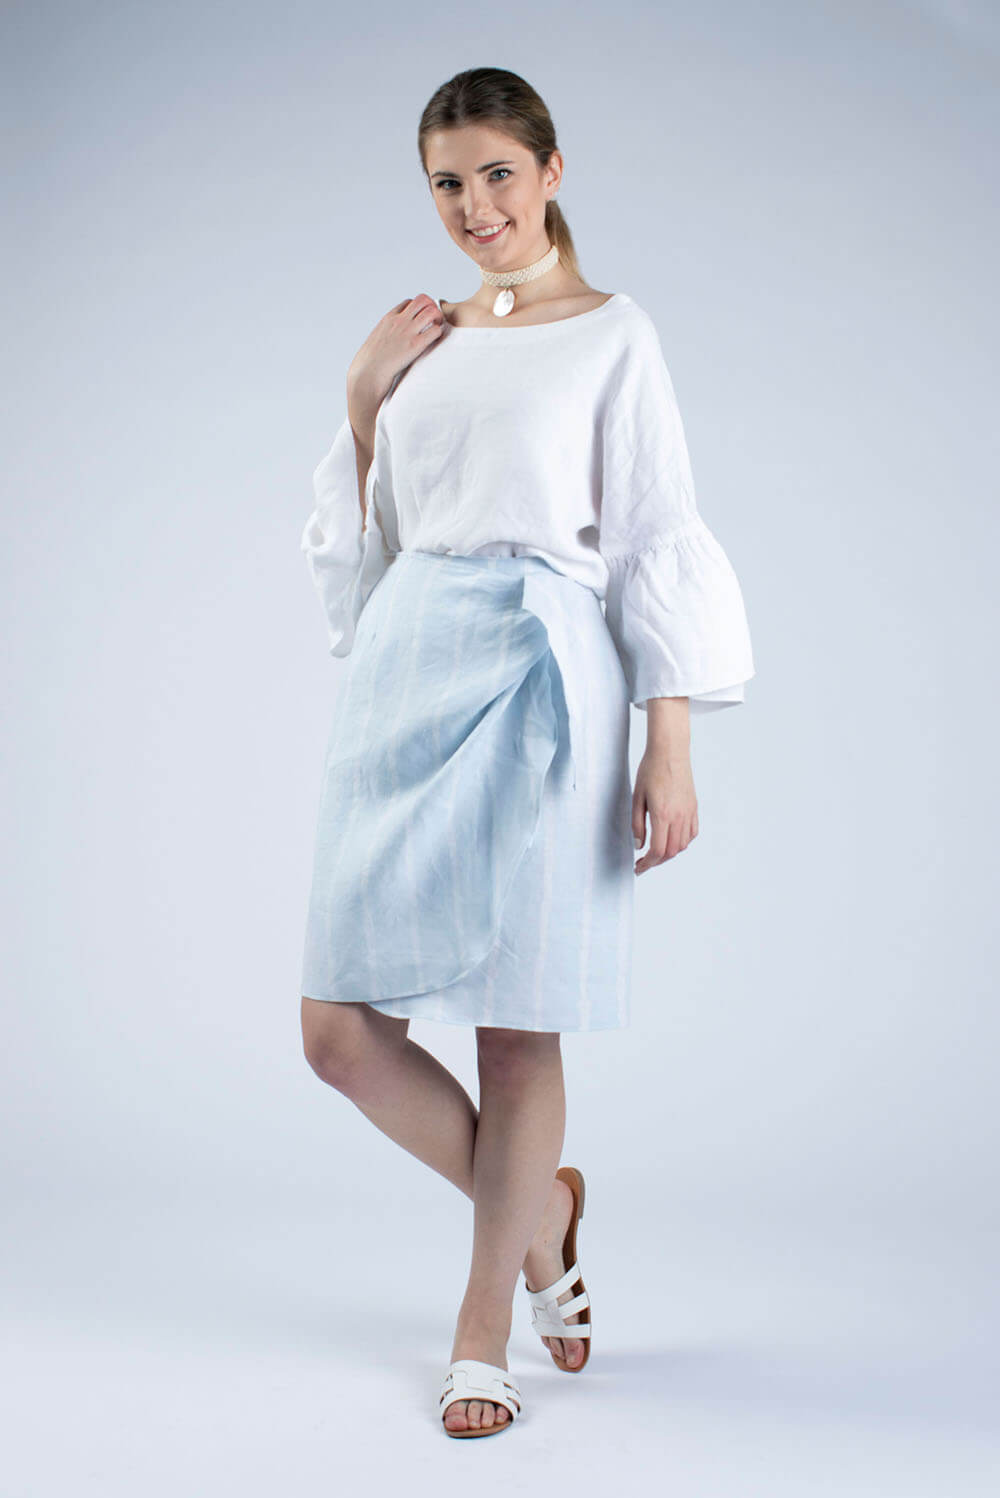 white Linen blouse made from clothes making kit by Cut Couture